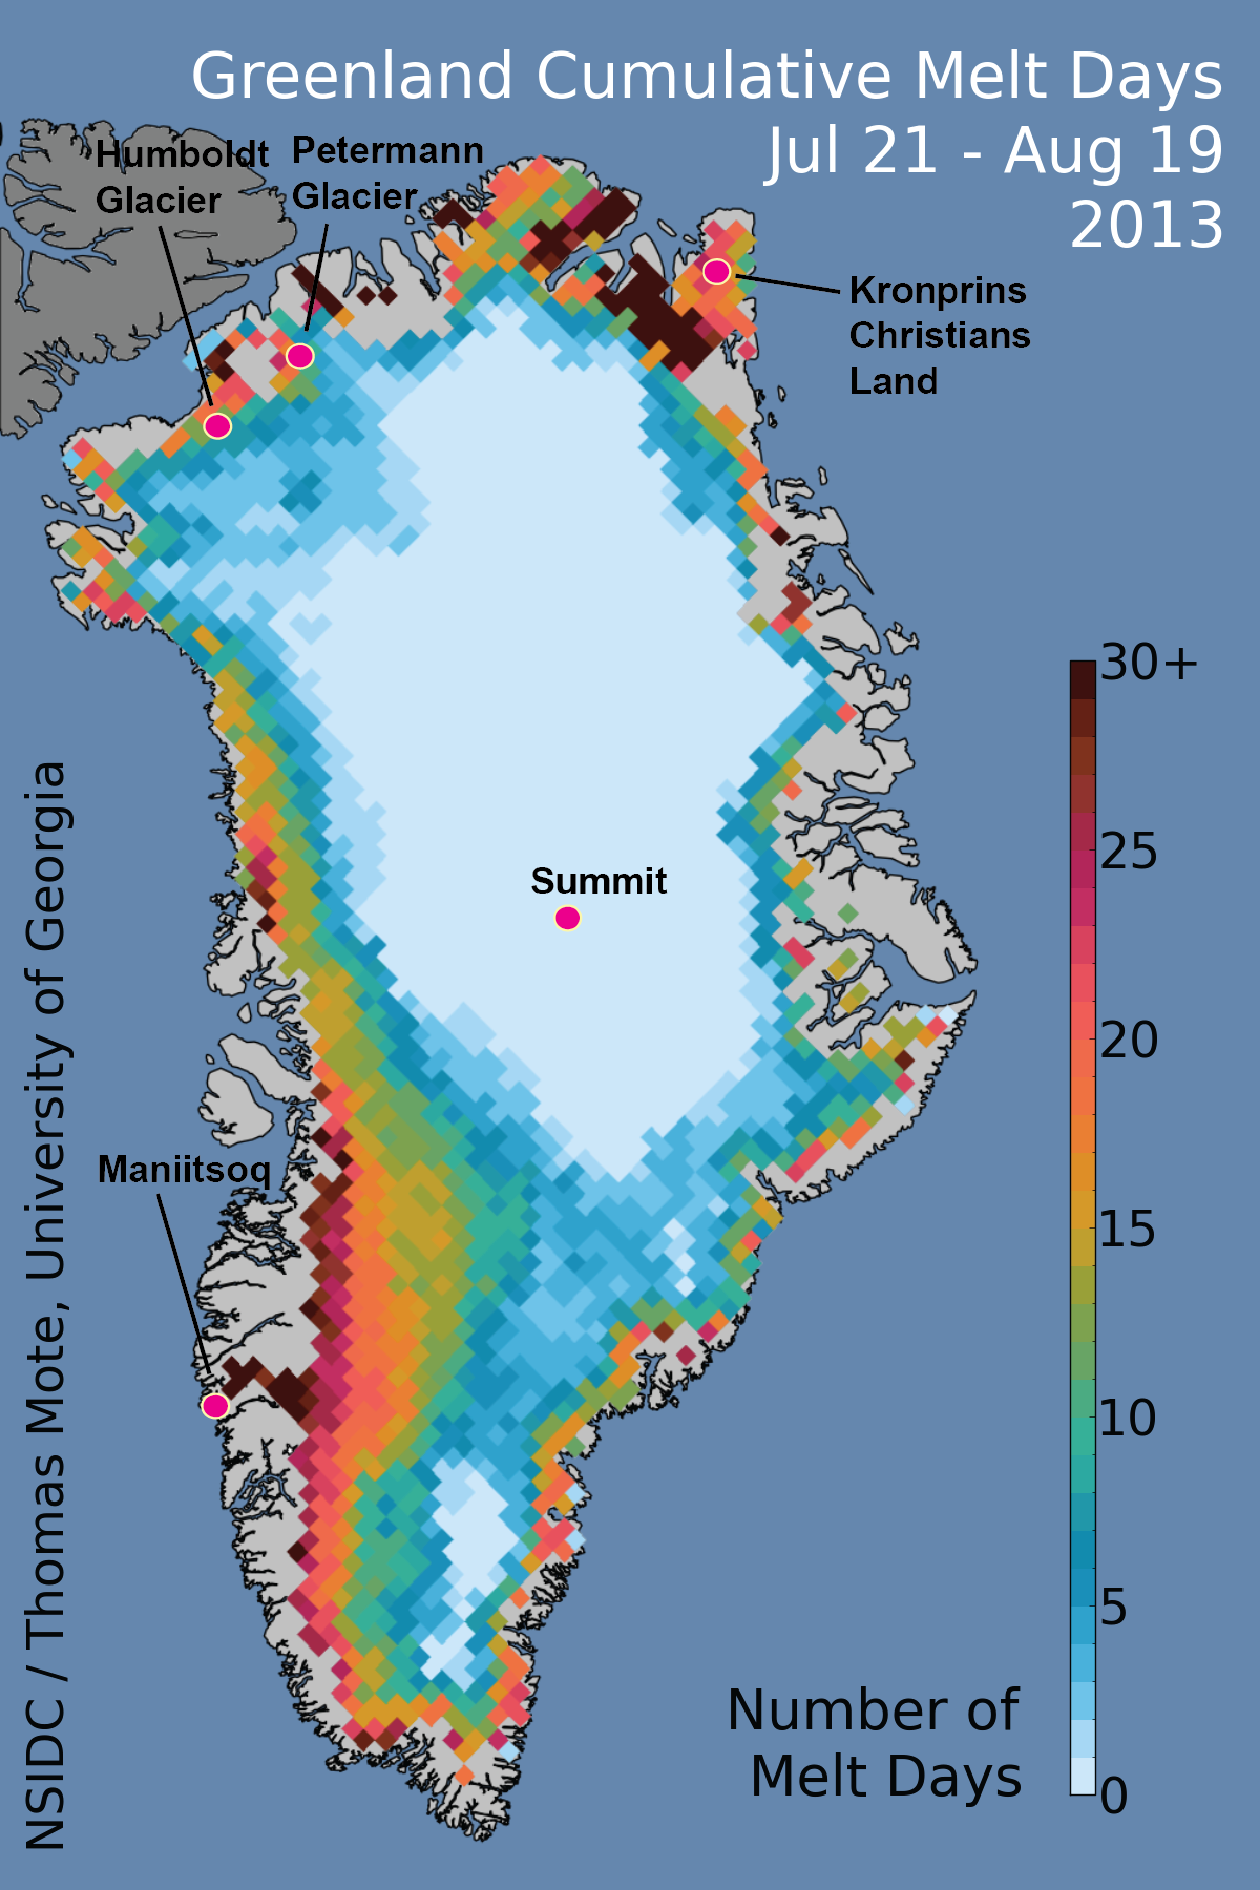 cumulative greenland melt days image for 21 july 19 august 30